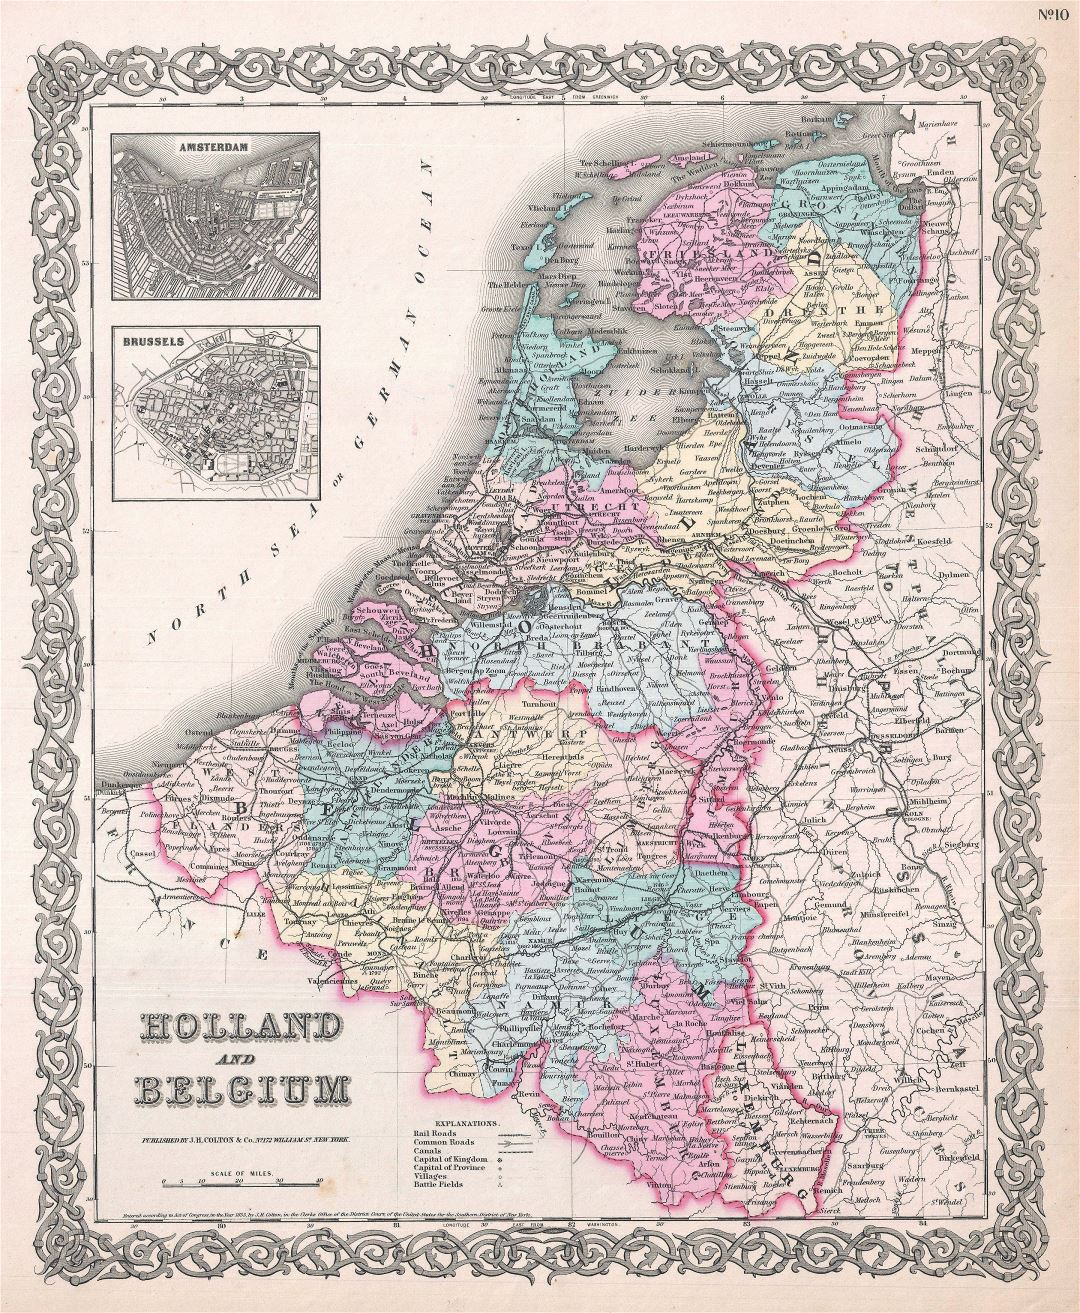 Large scale old political and administrative map of Holland and Belgium with cities - 1855